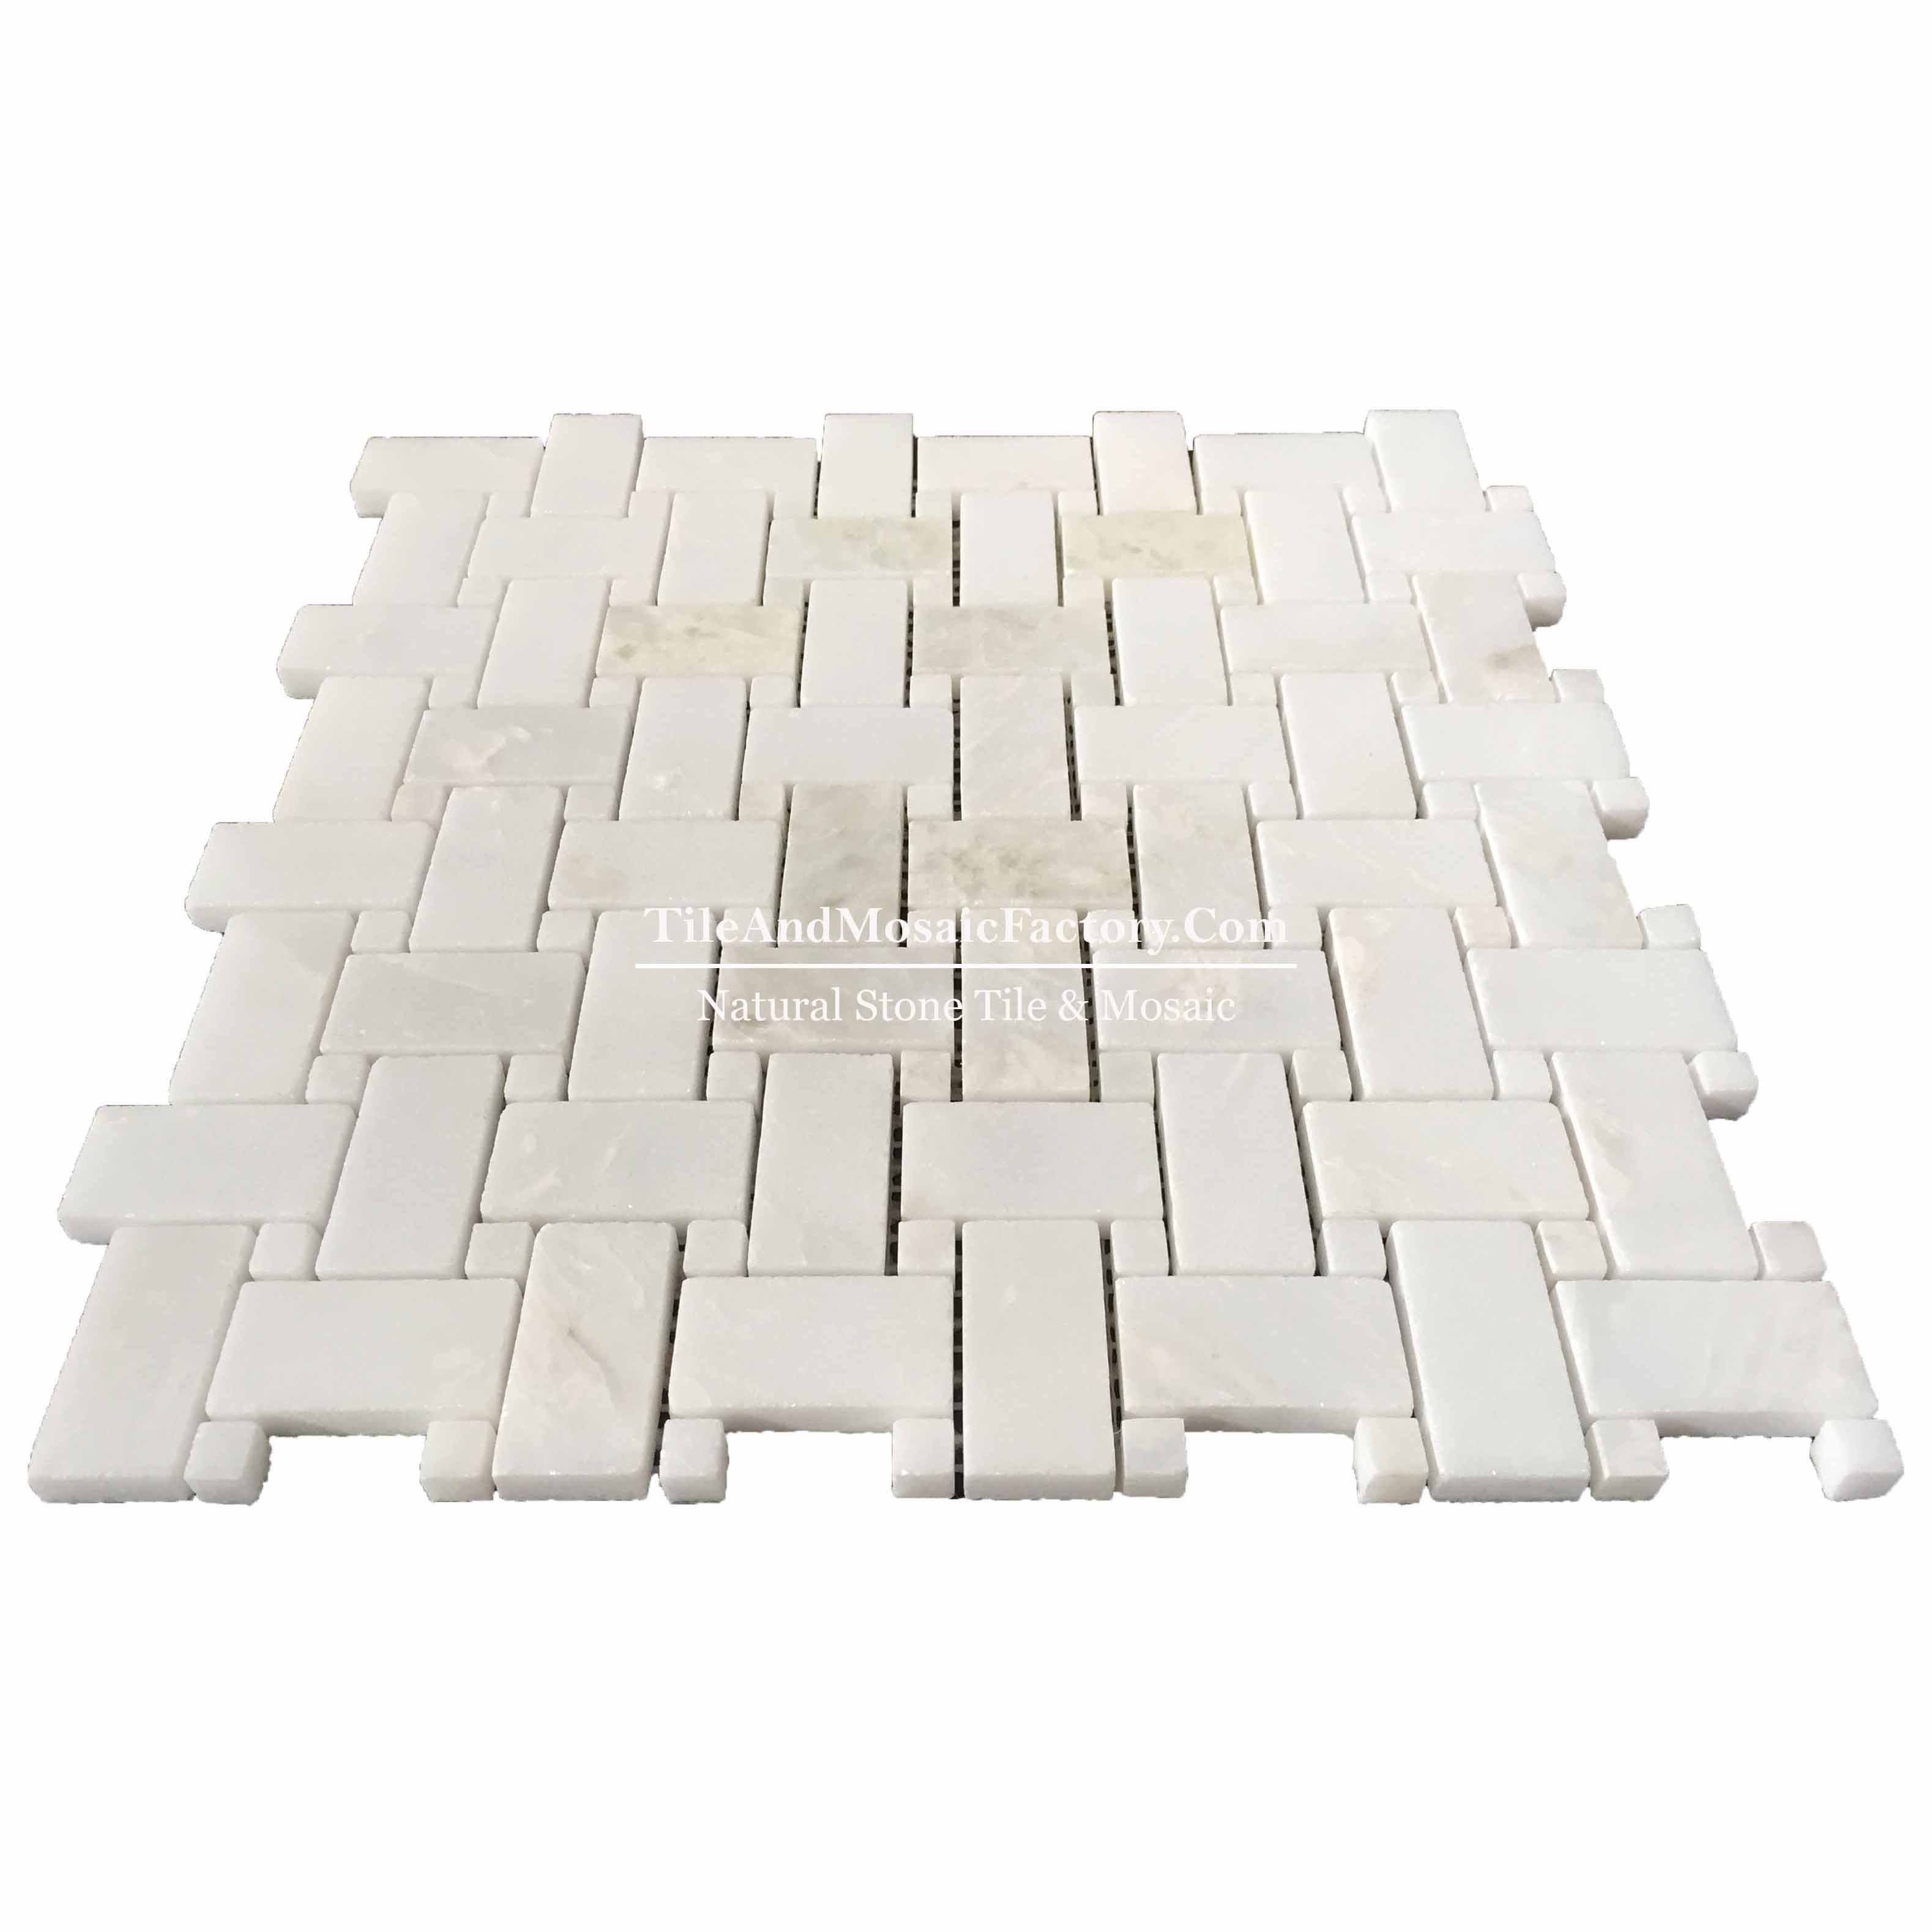 Rhino White Basketweave polished White color Marble Mosaic